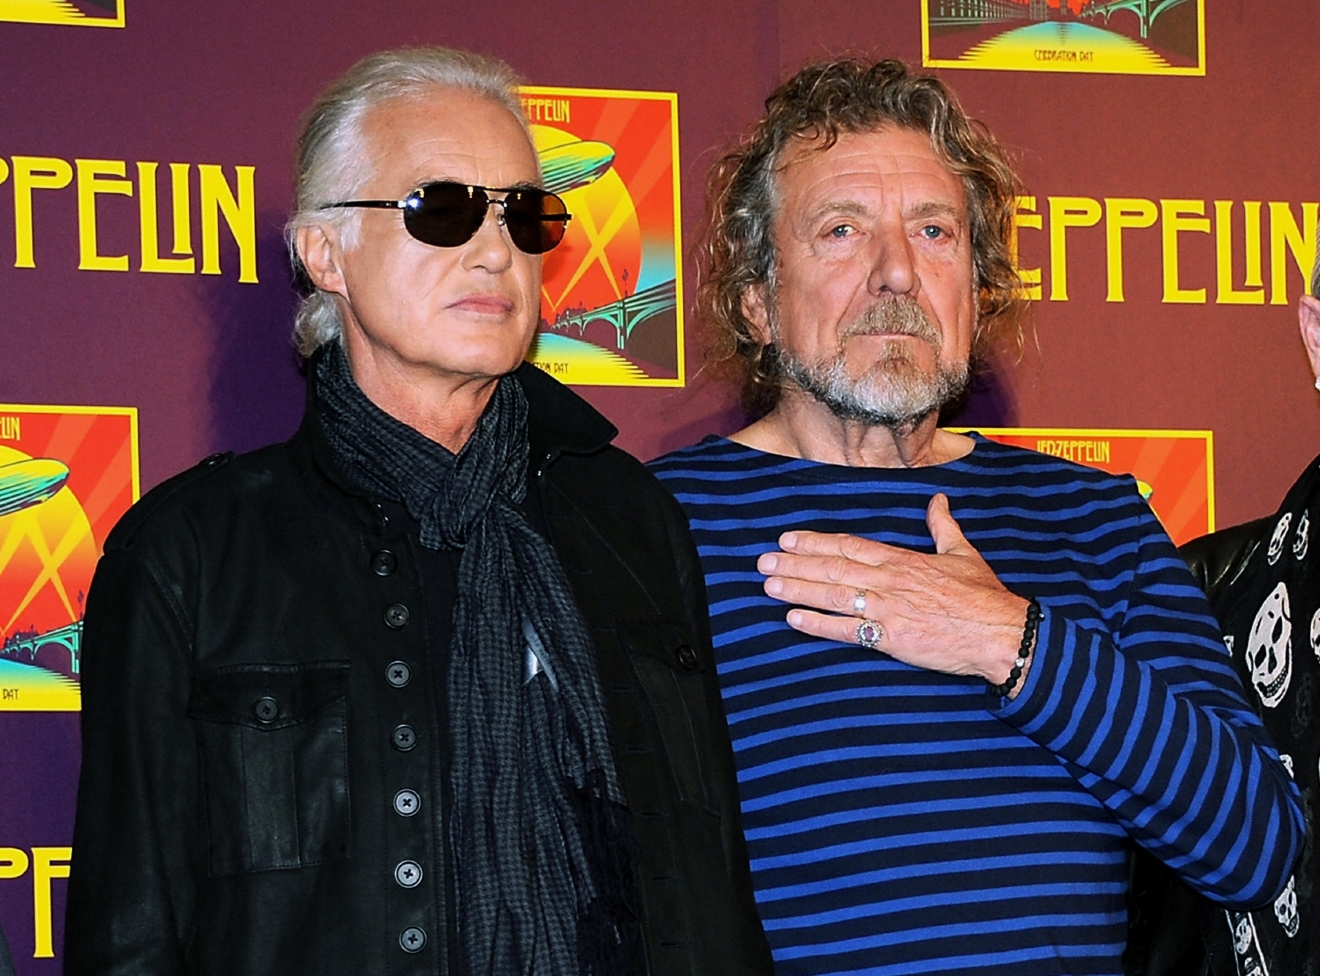 "FILE - In this Oct. 9, 2012 file photo, Led Zeppelin guitarist Jimmy Page, left, and singer Robert Plant appear at a press conference ahead of the worldwide theatrical release of ""Celebration Day,"" a concert film of their 2007 London O2 arena reunion show, in New York. (Photo by Evan Agostini/Invision/AP, File)"